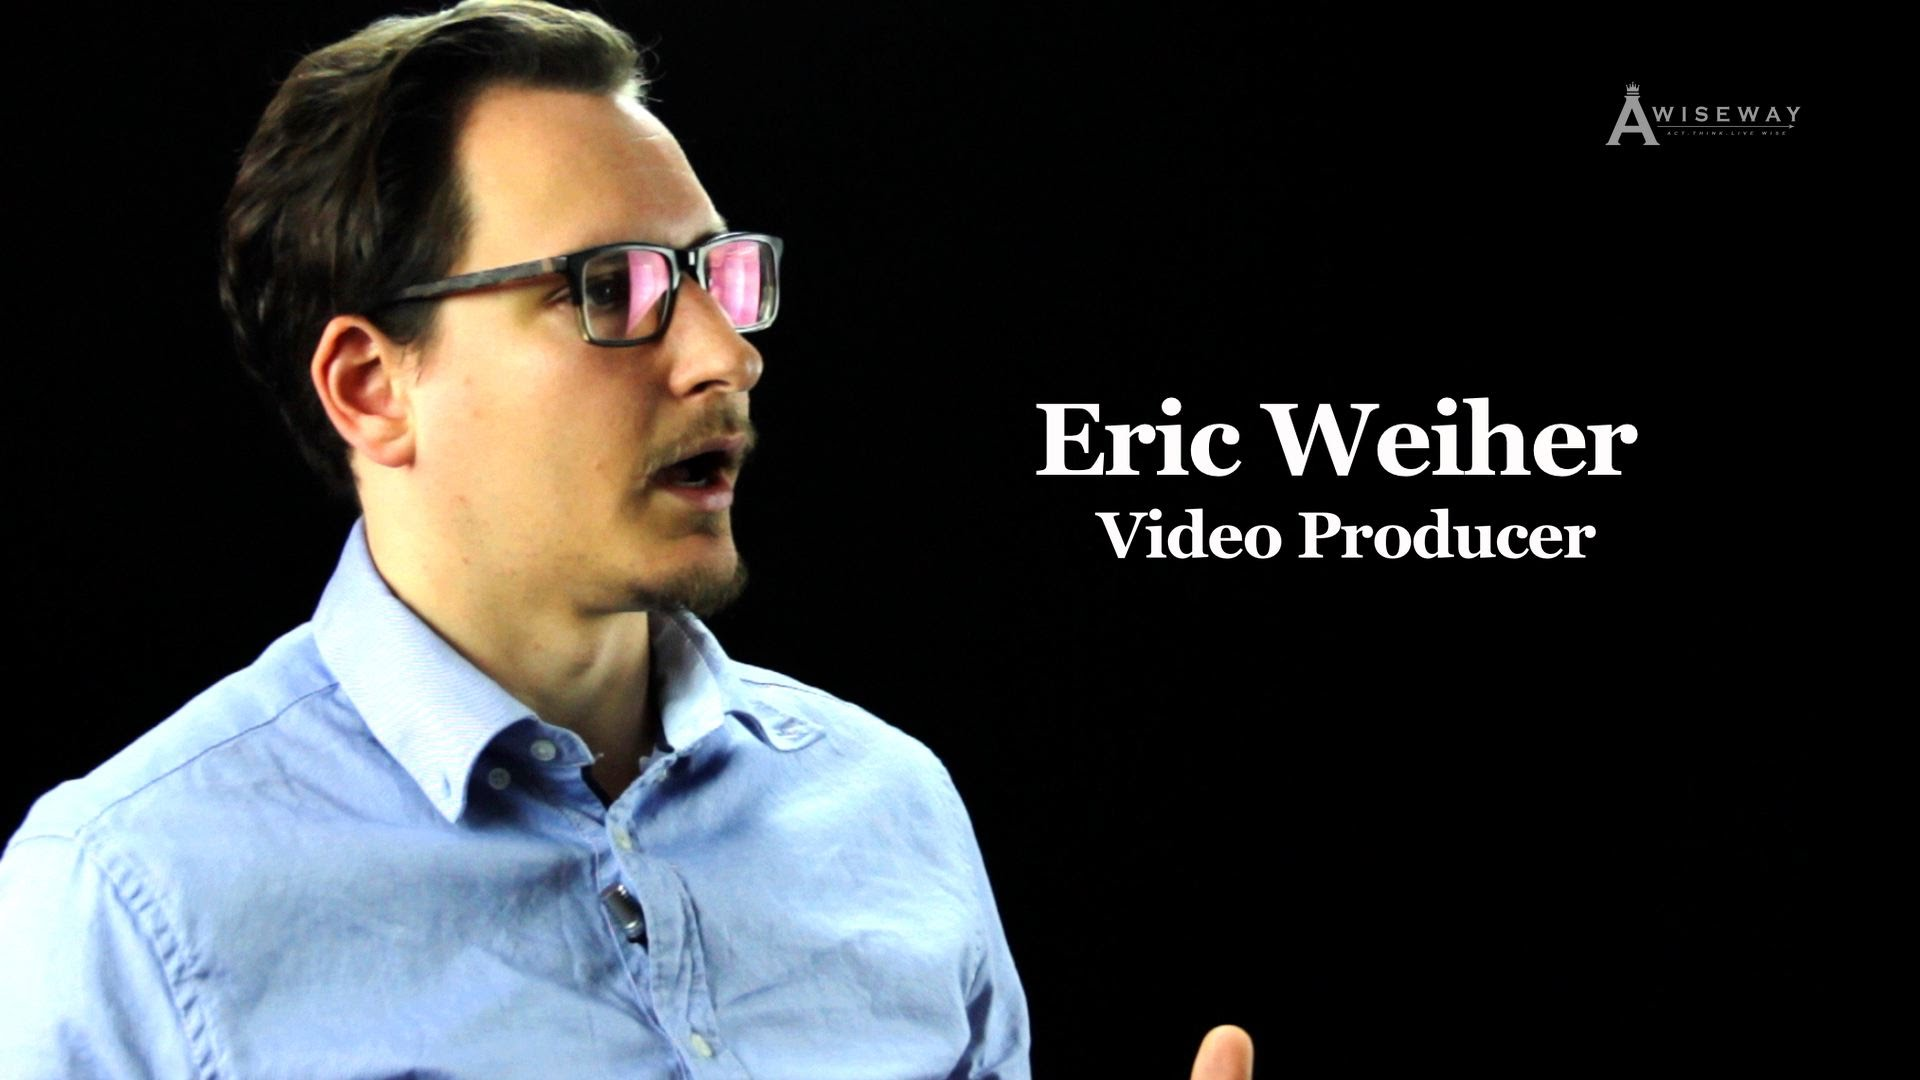 Video Producer Explains Why Communication with Clients are Vital